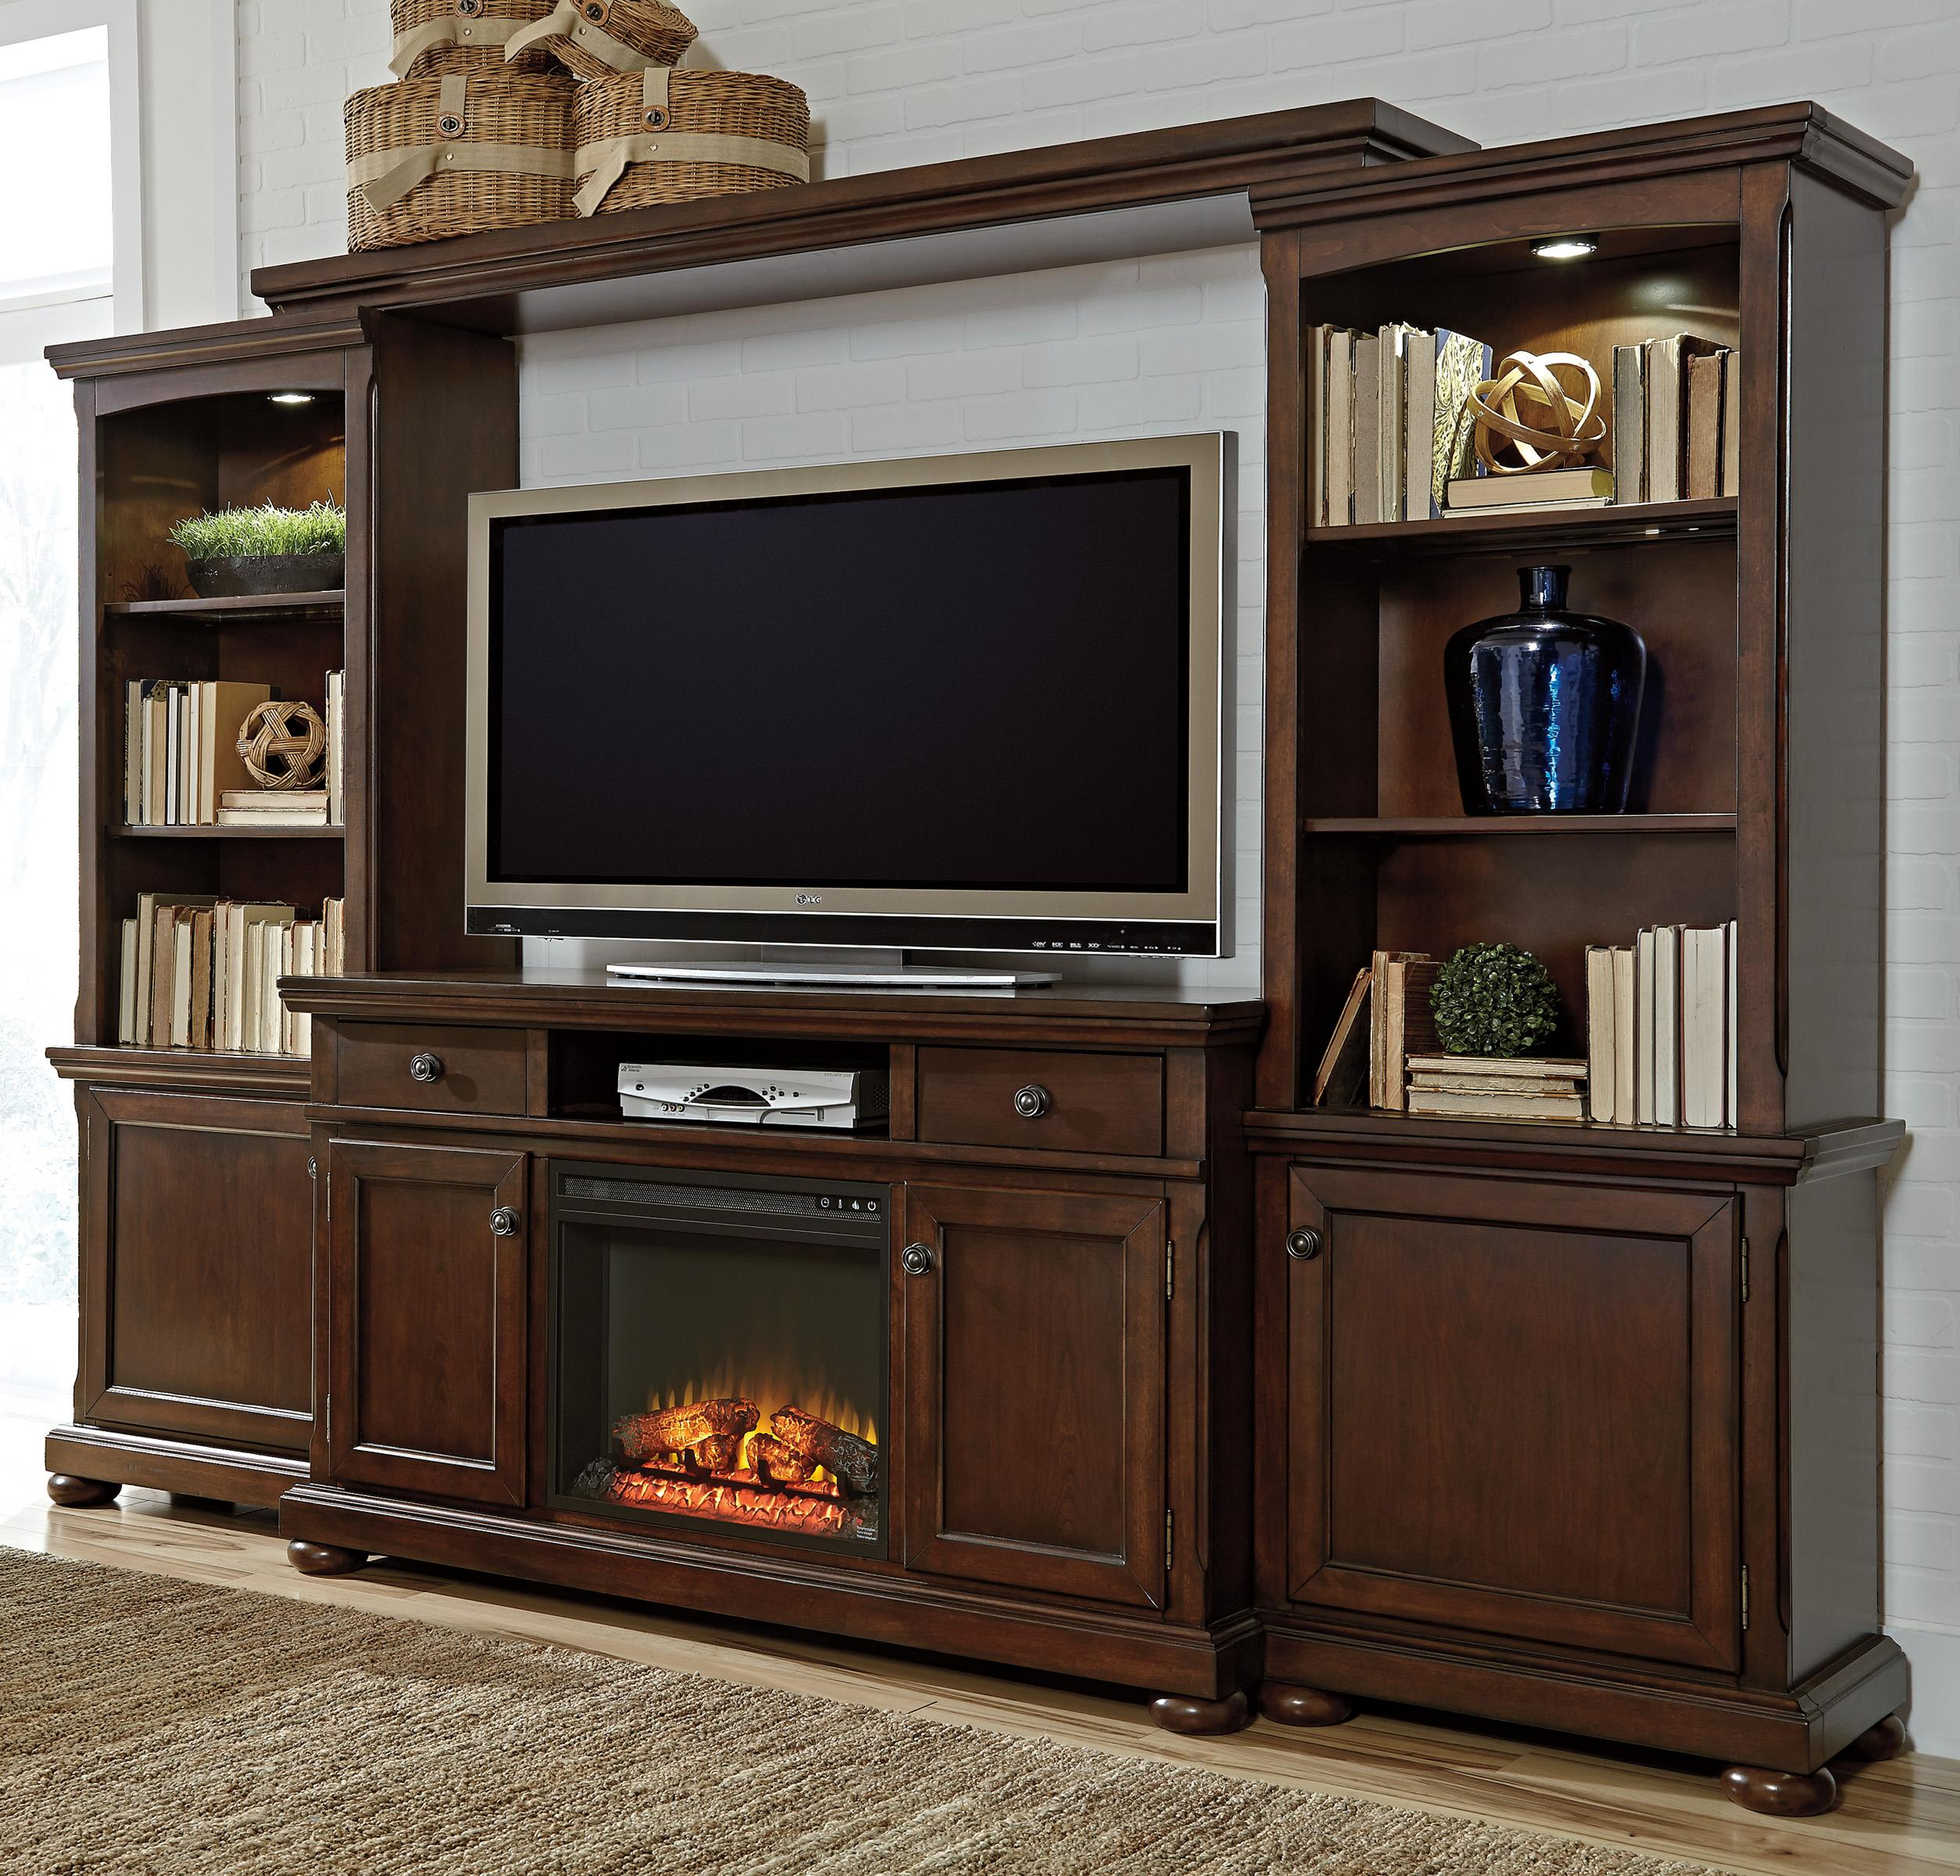 Millennium Porter Extra Large TV Stand, Bridge, and Piers - Item Number: W697-33+35+34+132+W100-01